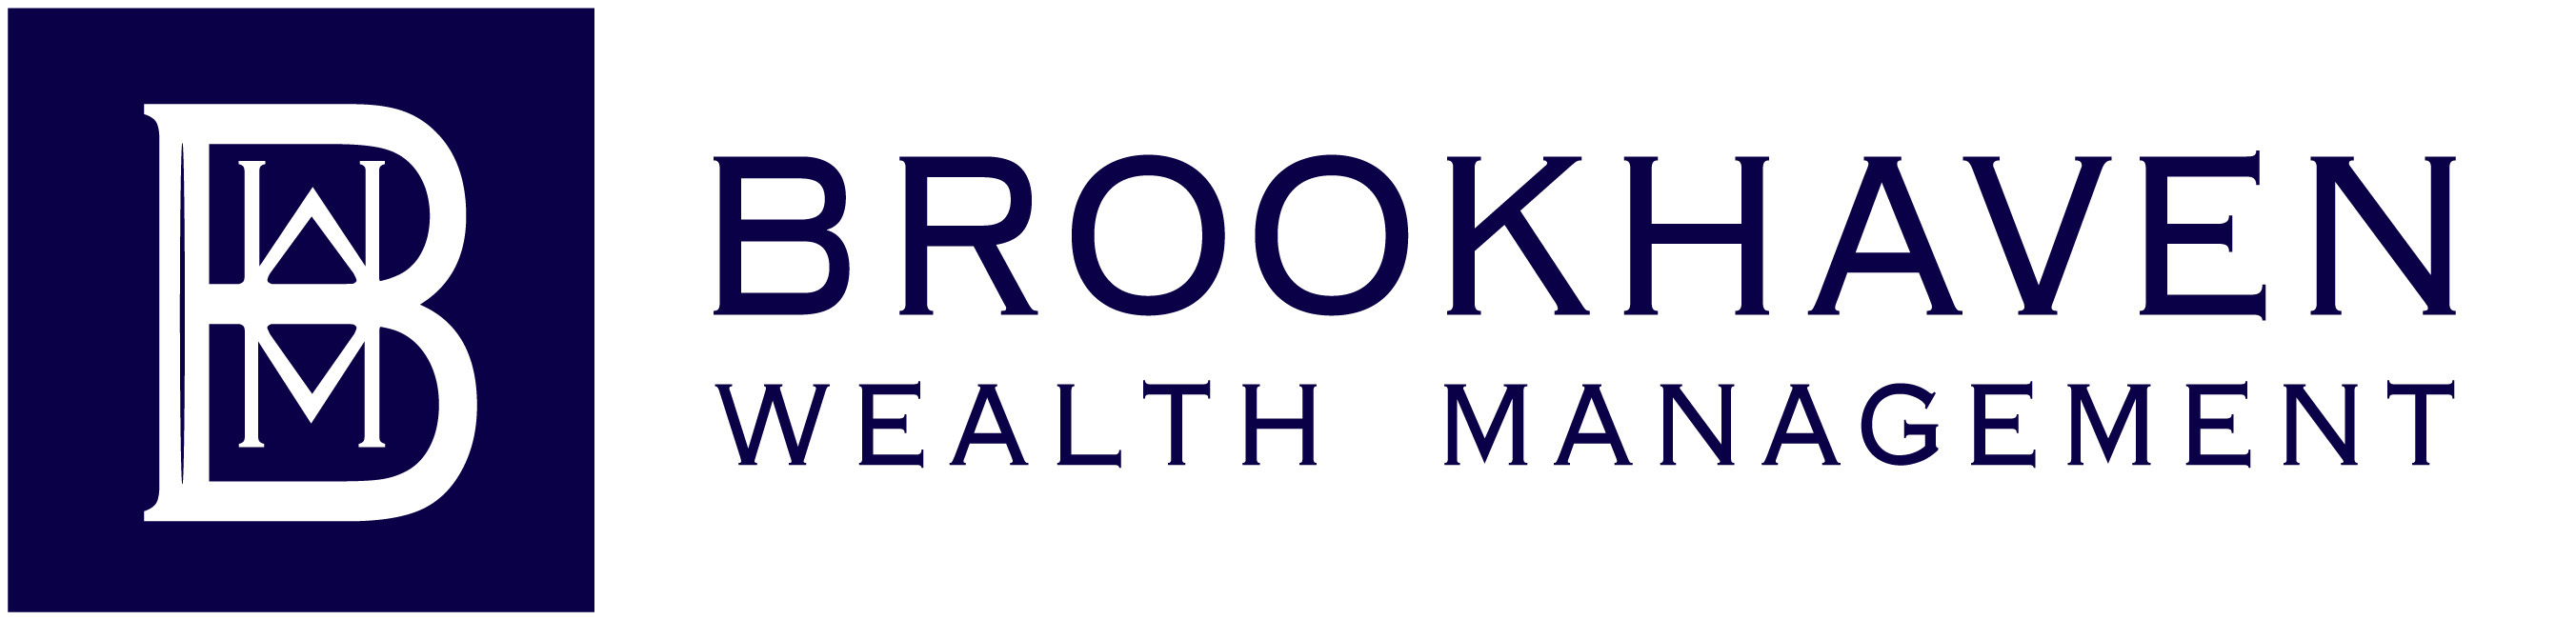 Brookhaven Wealth Management, Inc.